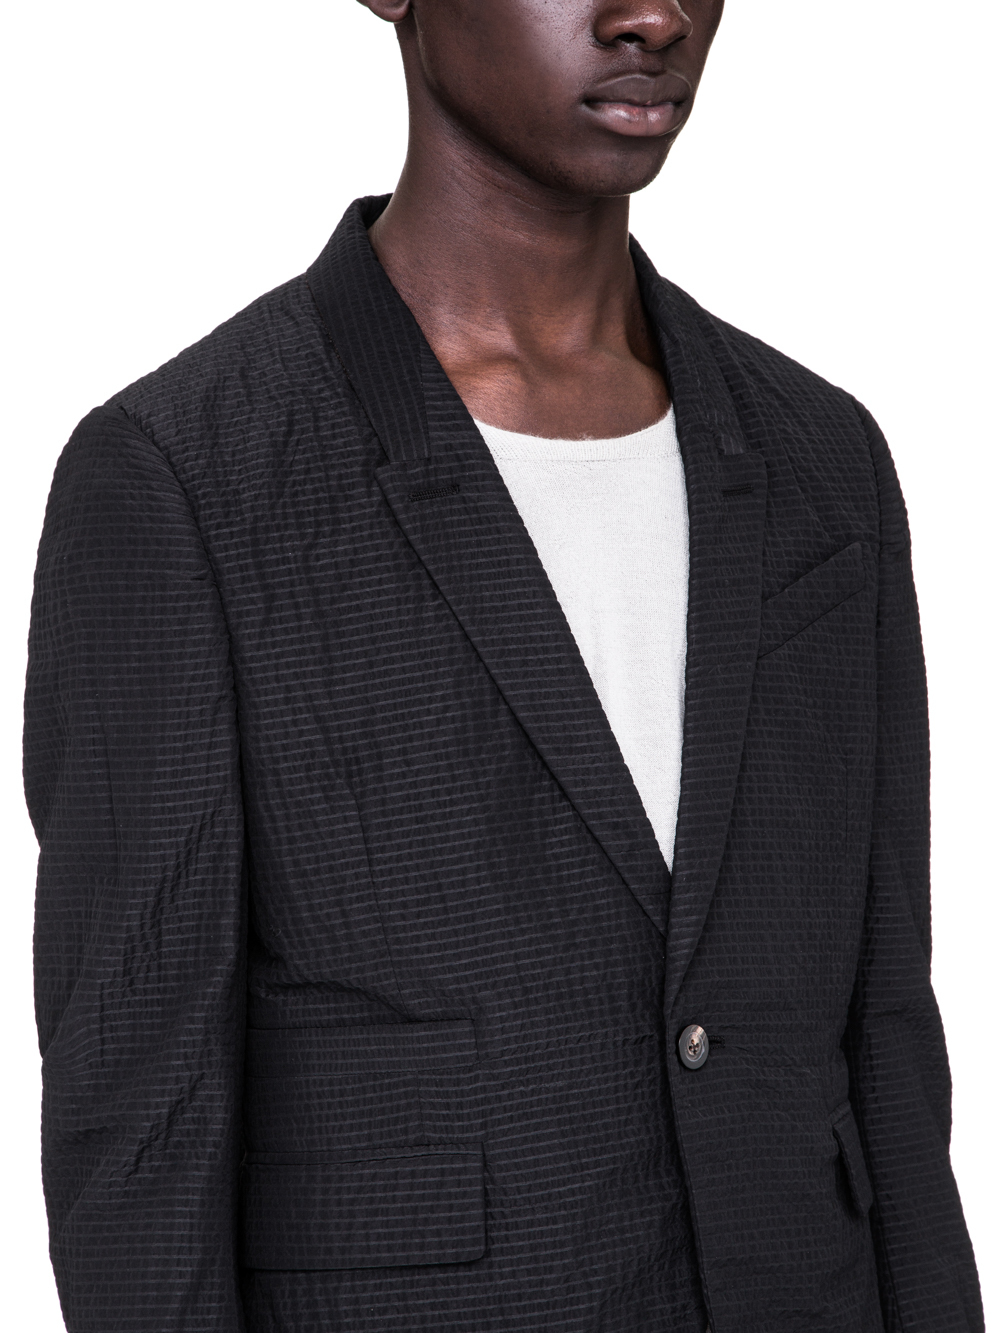 RICK OWENS SS19 BABEL SOFT BLAZER CROPPED IN BLACK